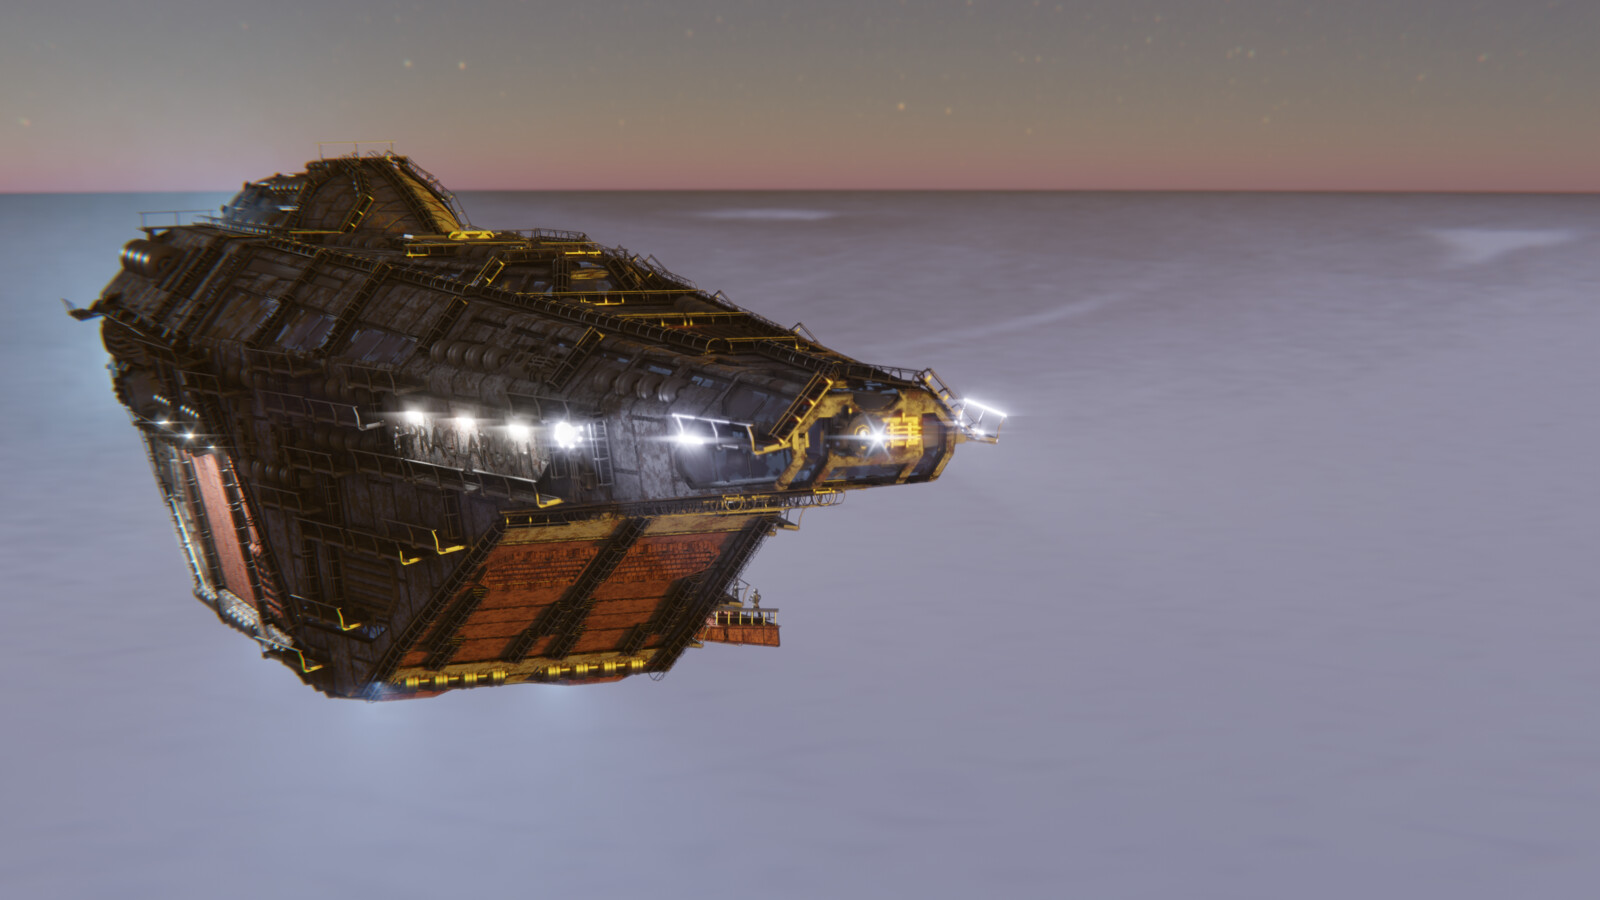 Hollow-belly Cargo Ship (Realtime)